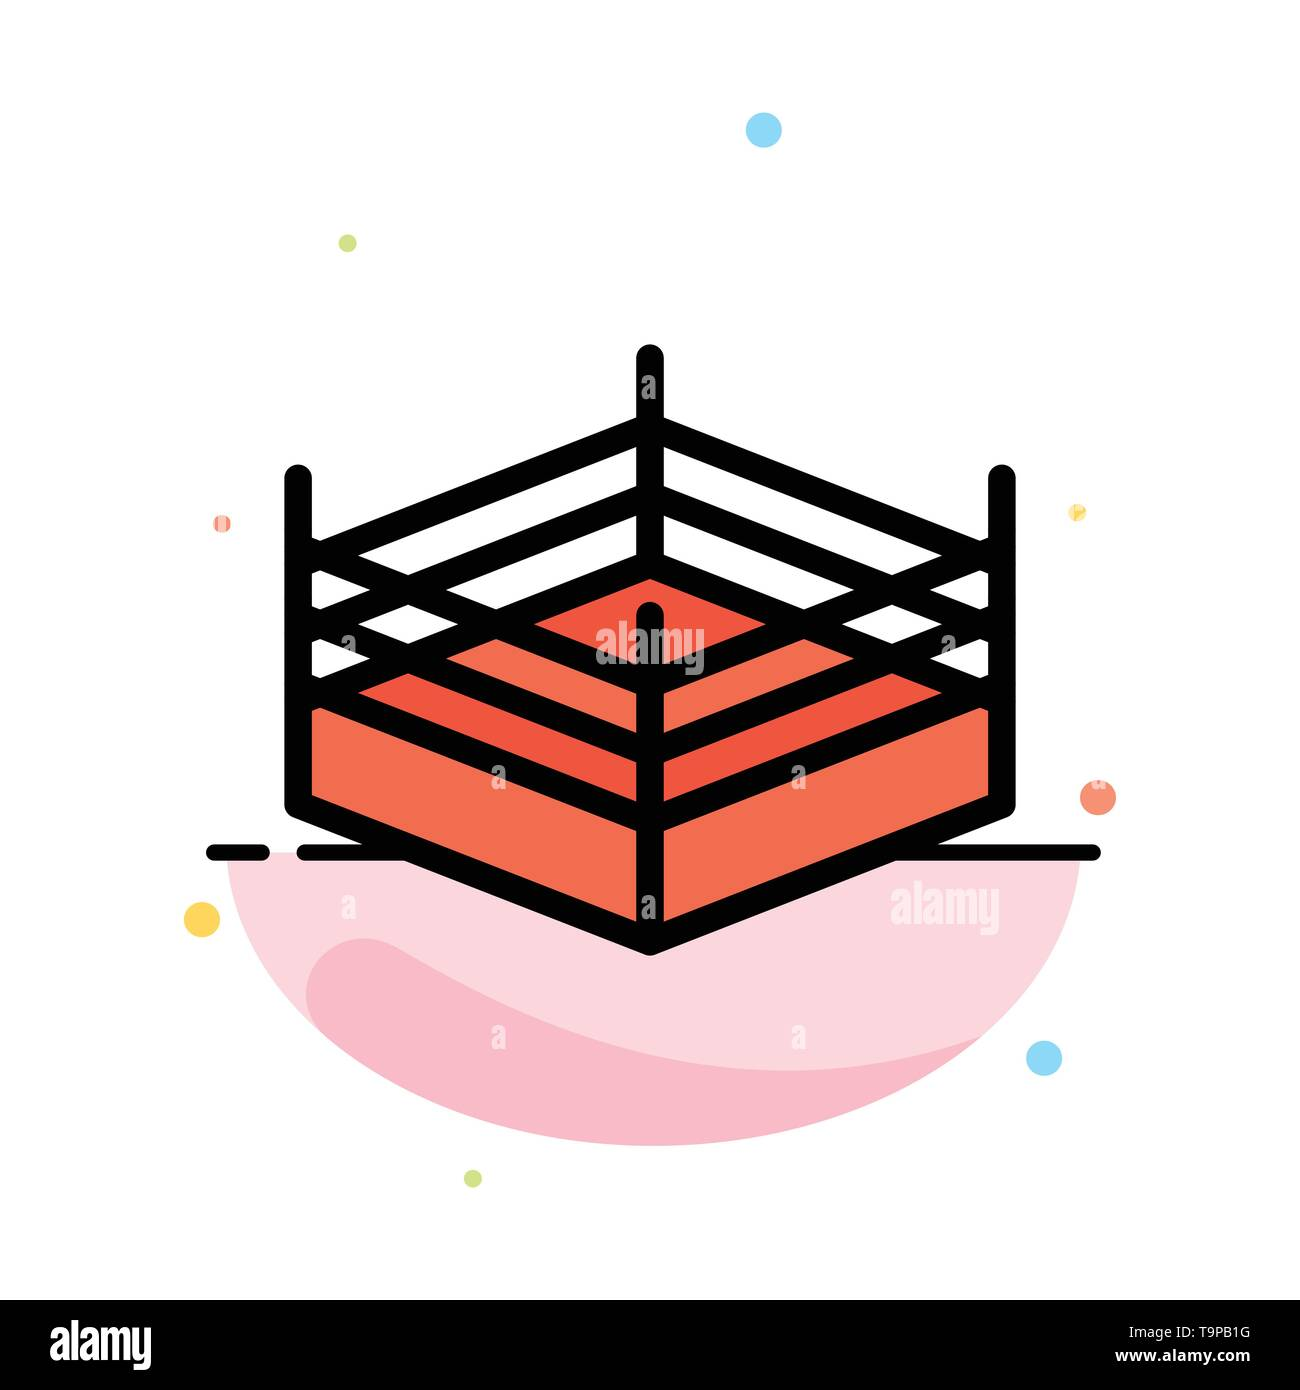 Boxing, Ring, Wrestling Abstract Flat Color Icon Template Stock Vector